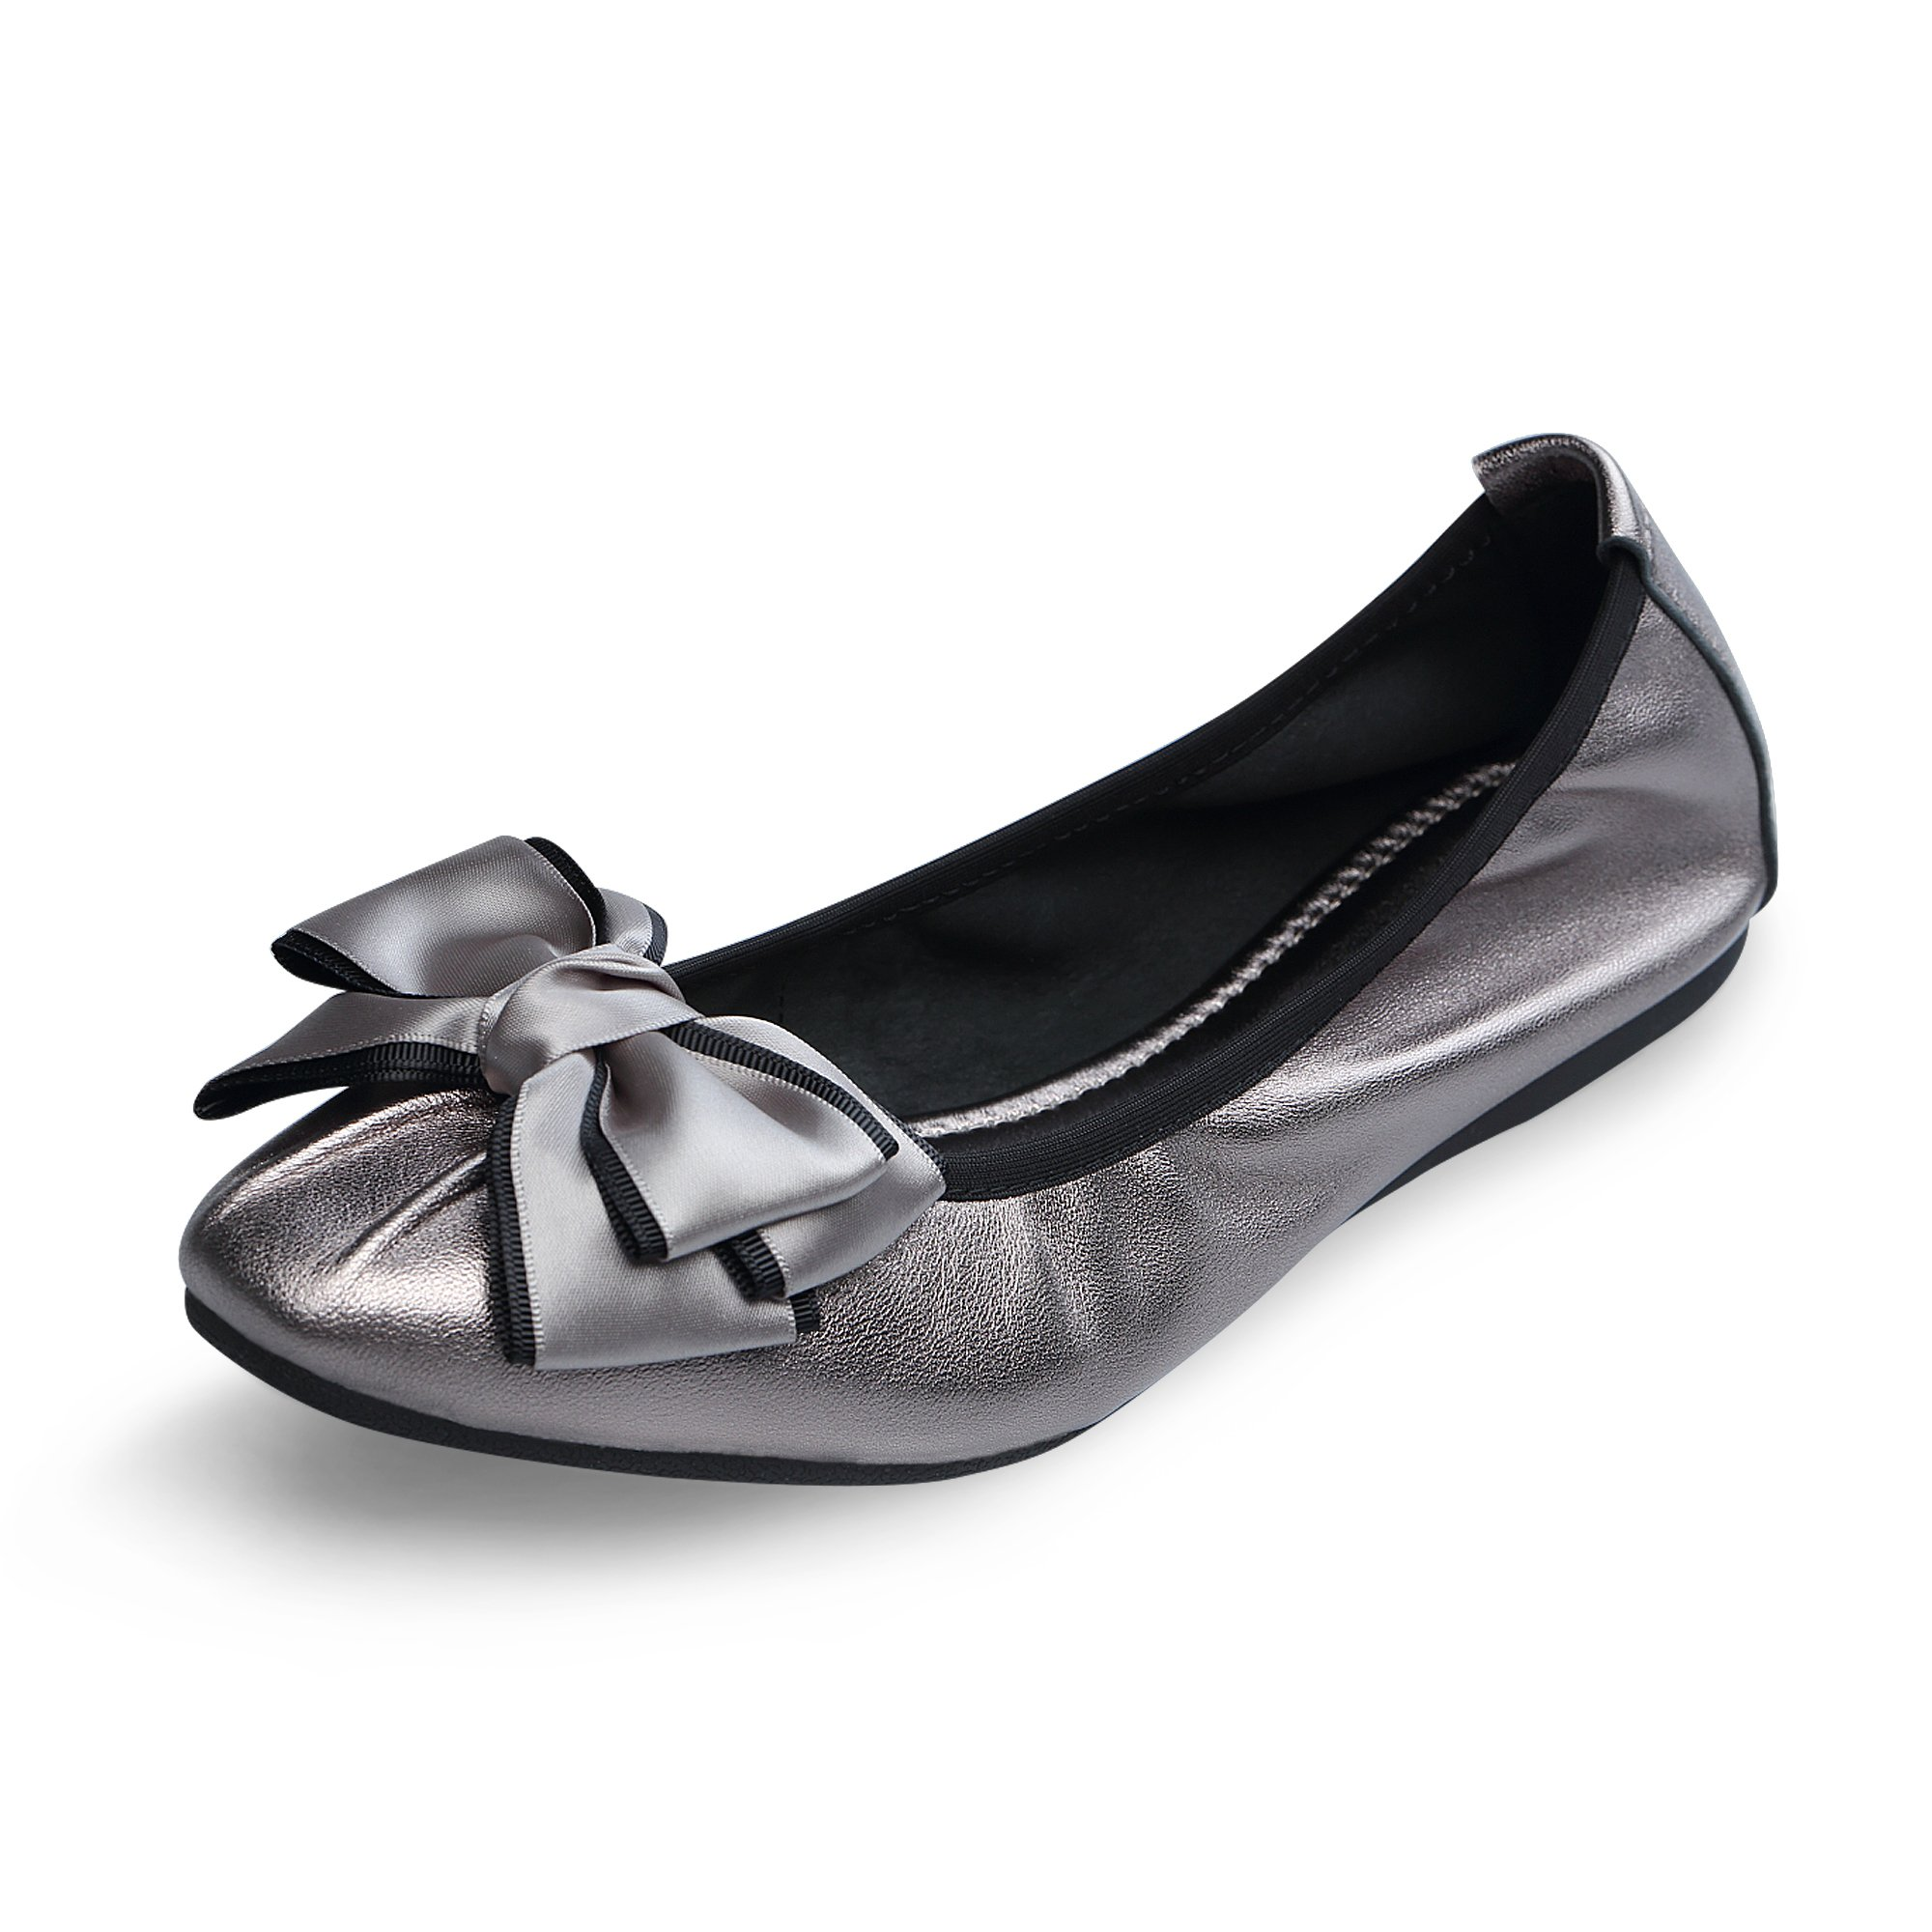 linzhiqun Women's Emmie Chaste Ballet Flat Bowknot Lambskin Loafers Casual Ladies Shoes Leather Silver 9